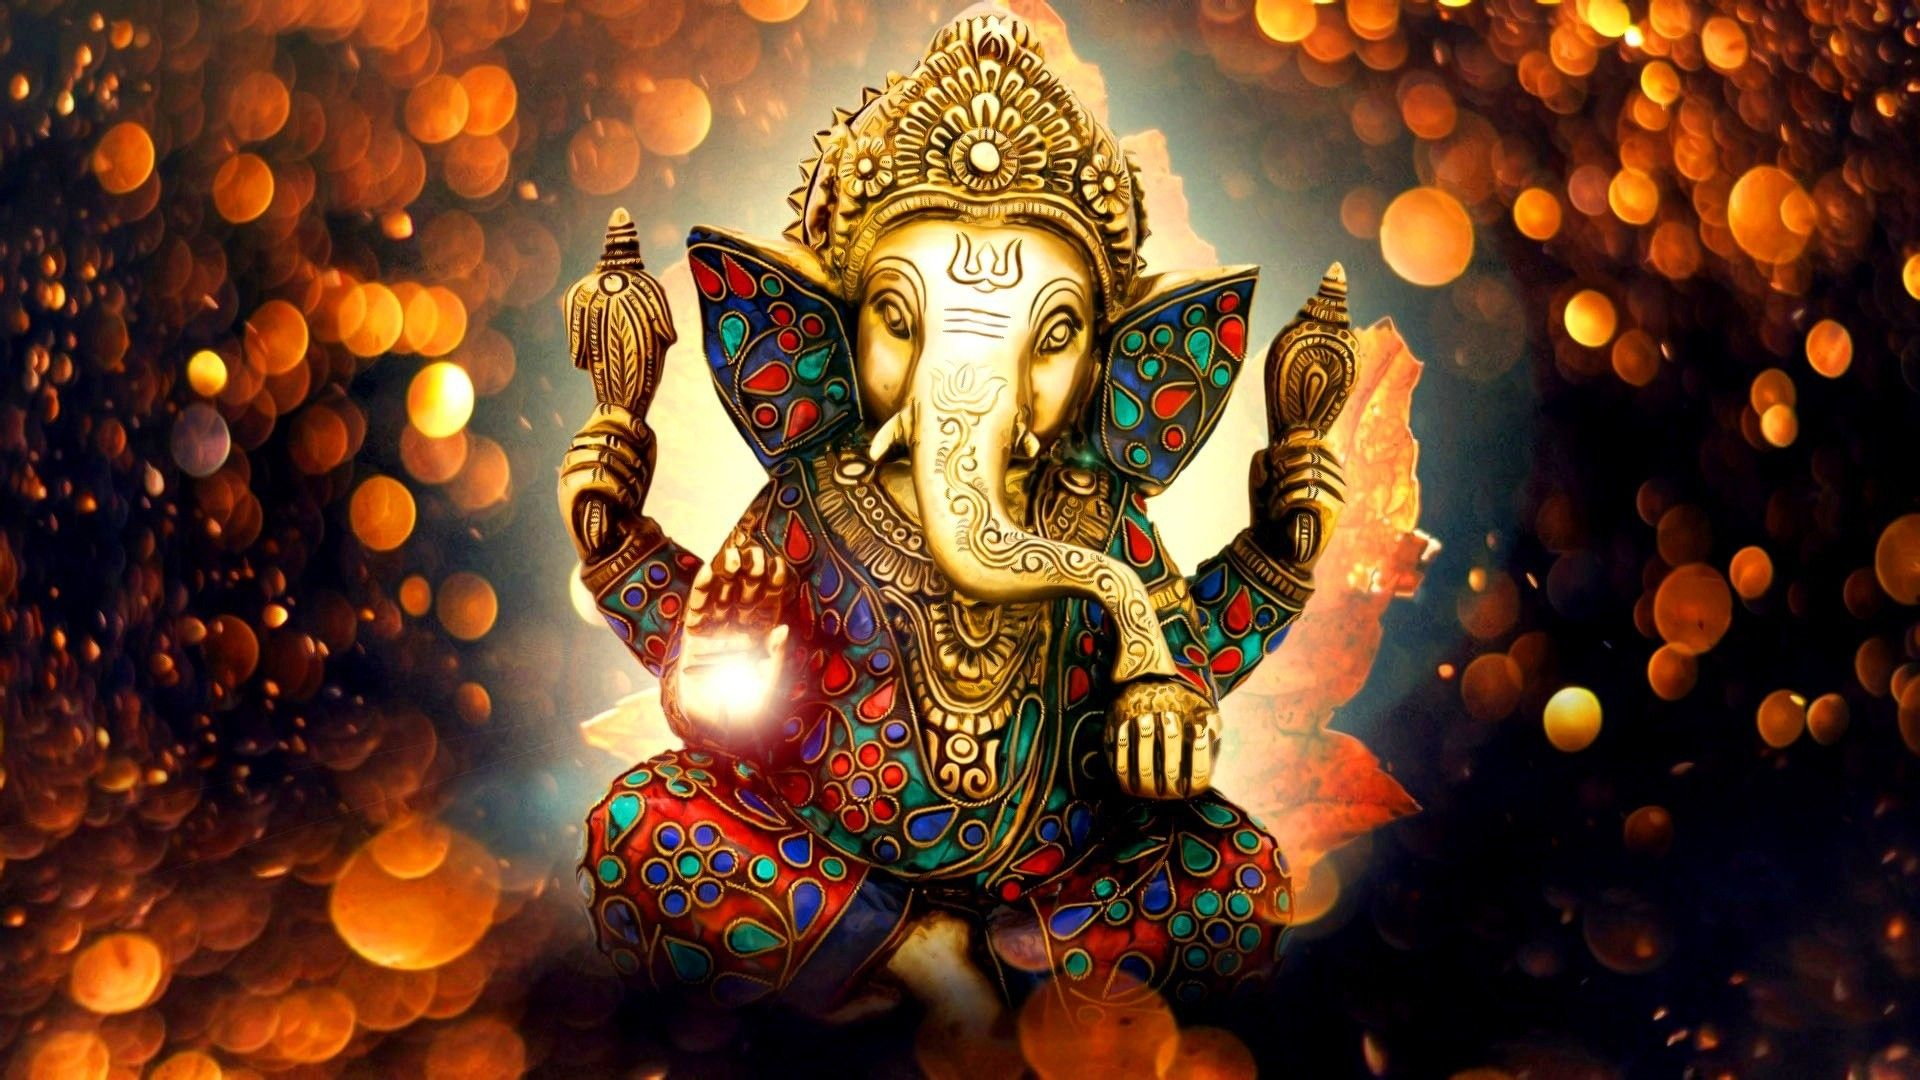 Pictures of Lord Ganesha Wallpapers 1920x1080 for android 1920x1080